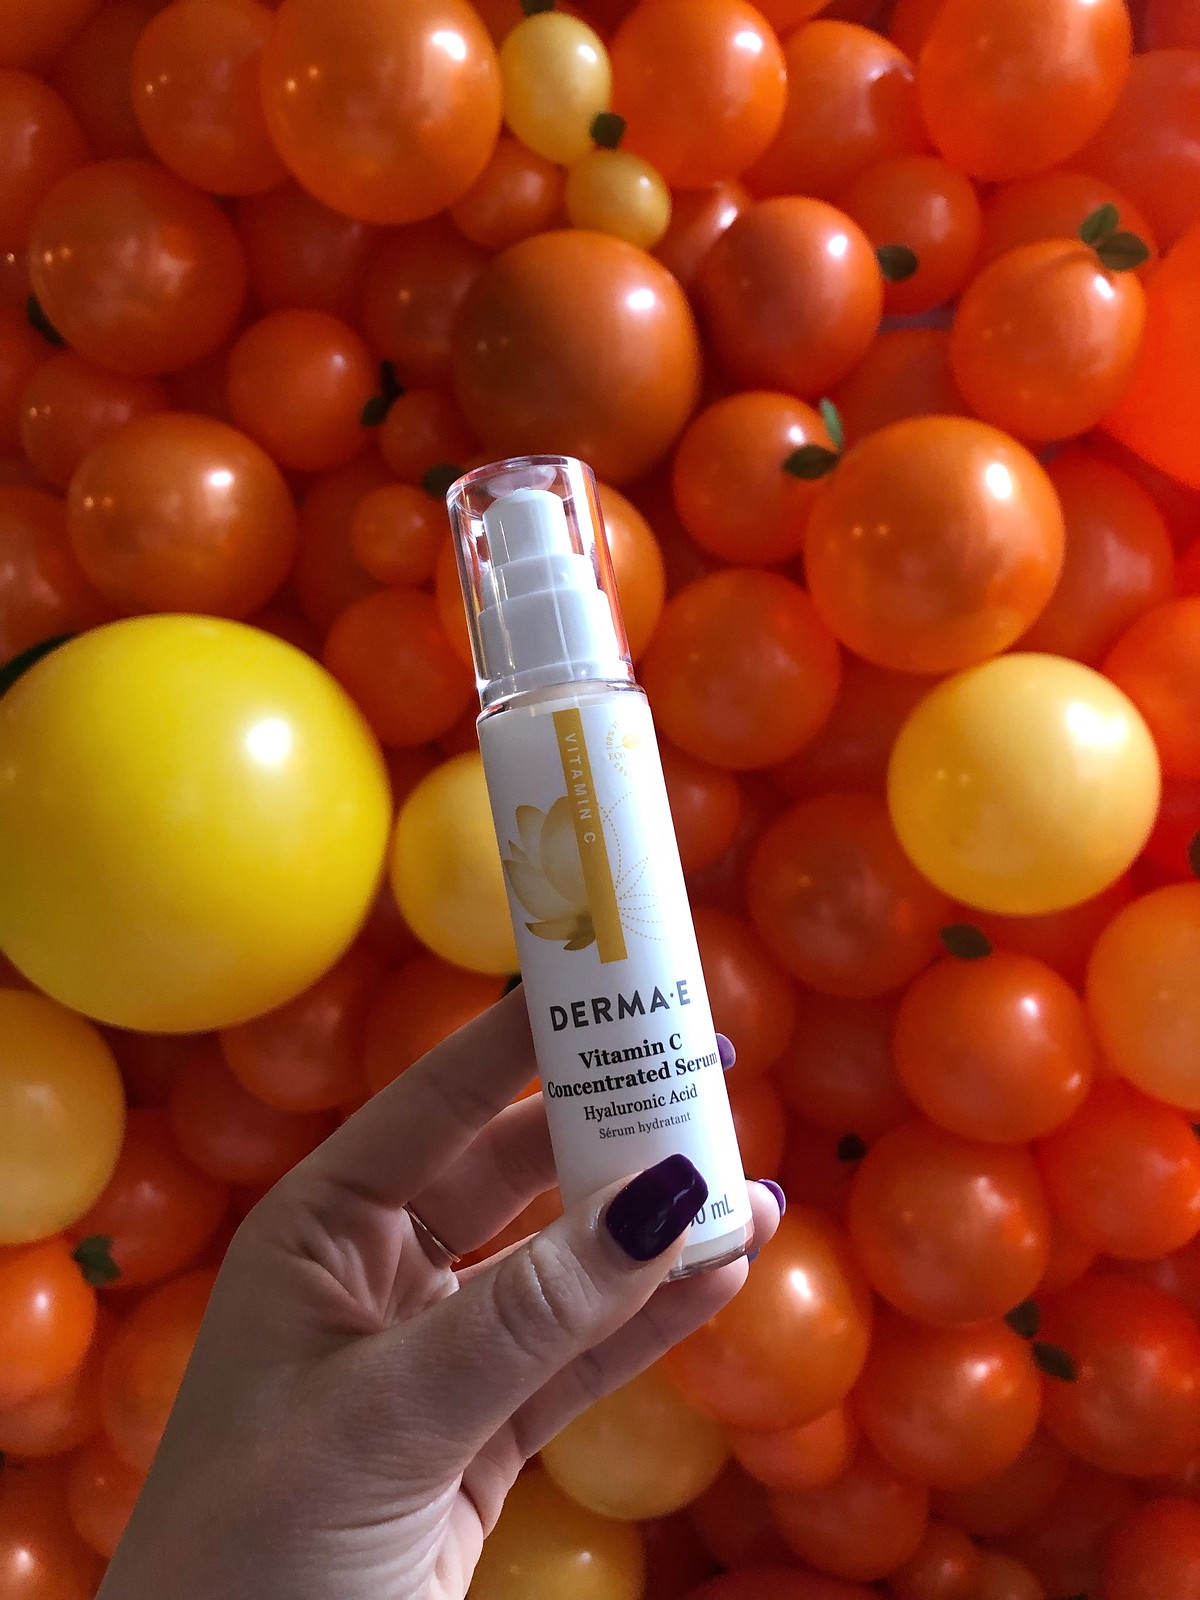 Derma E Vitamin C Concentrated Serum Review